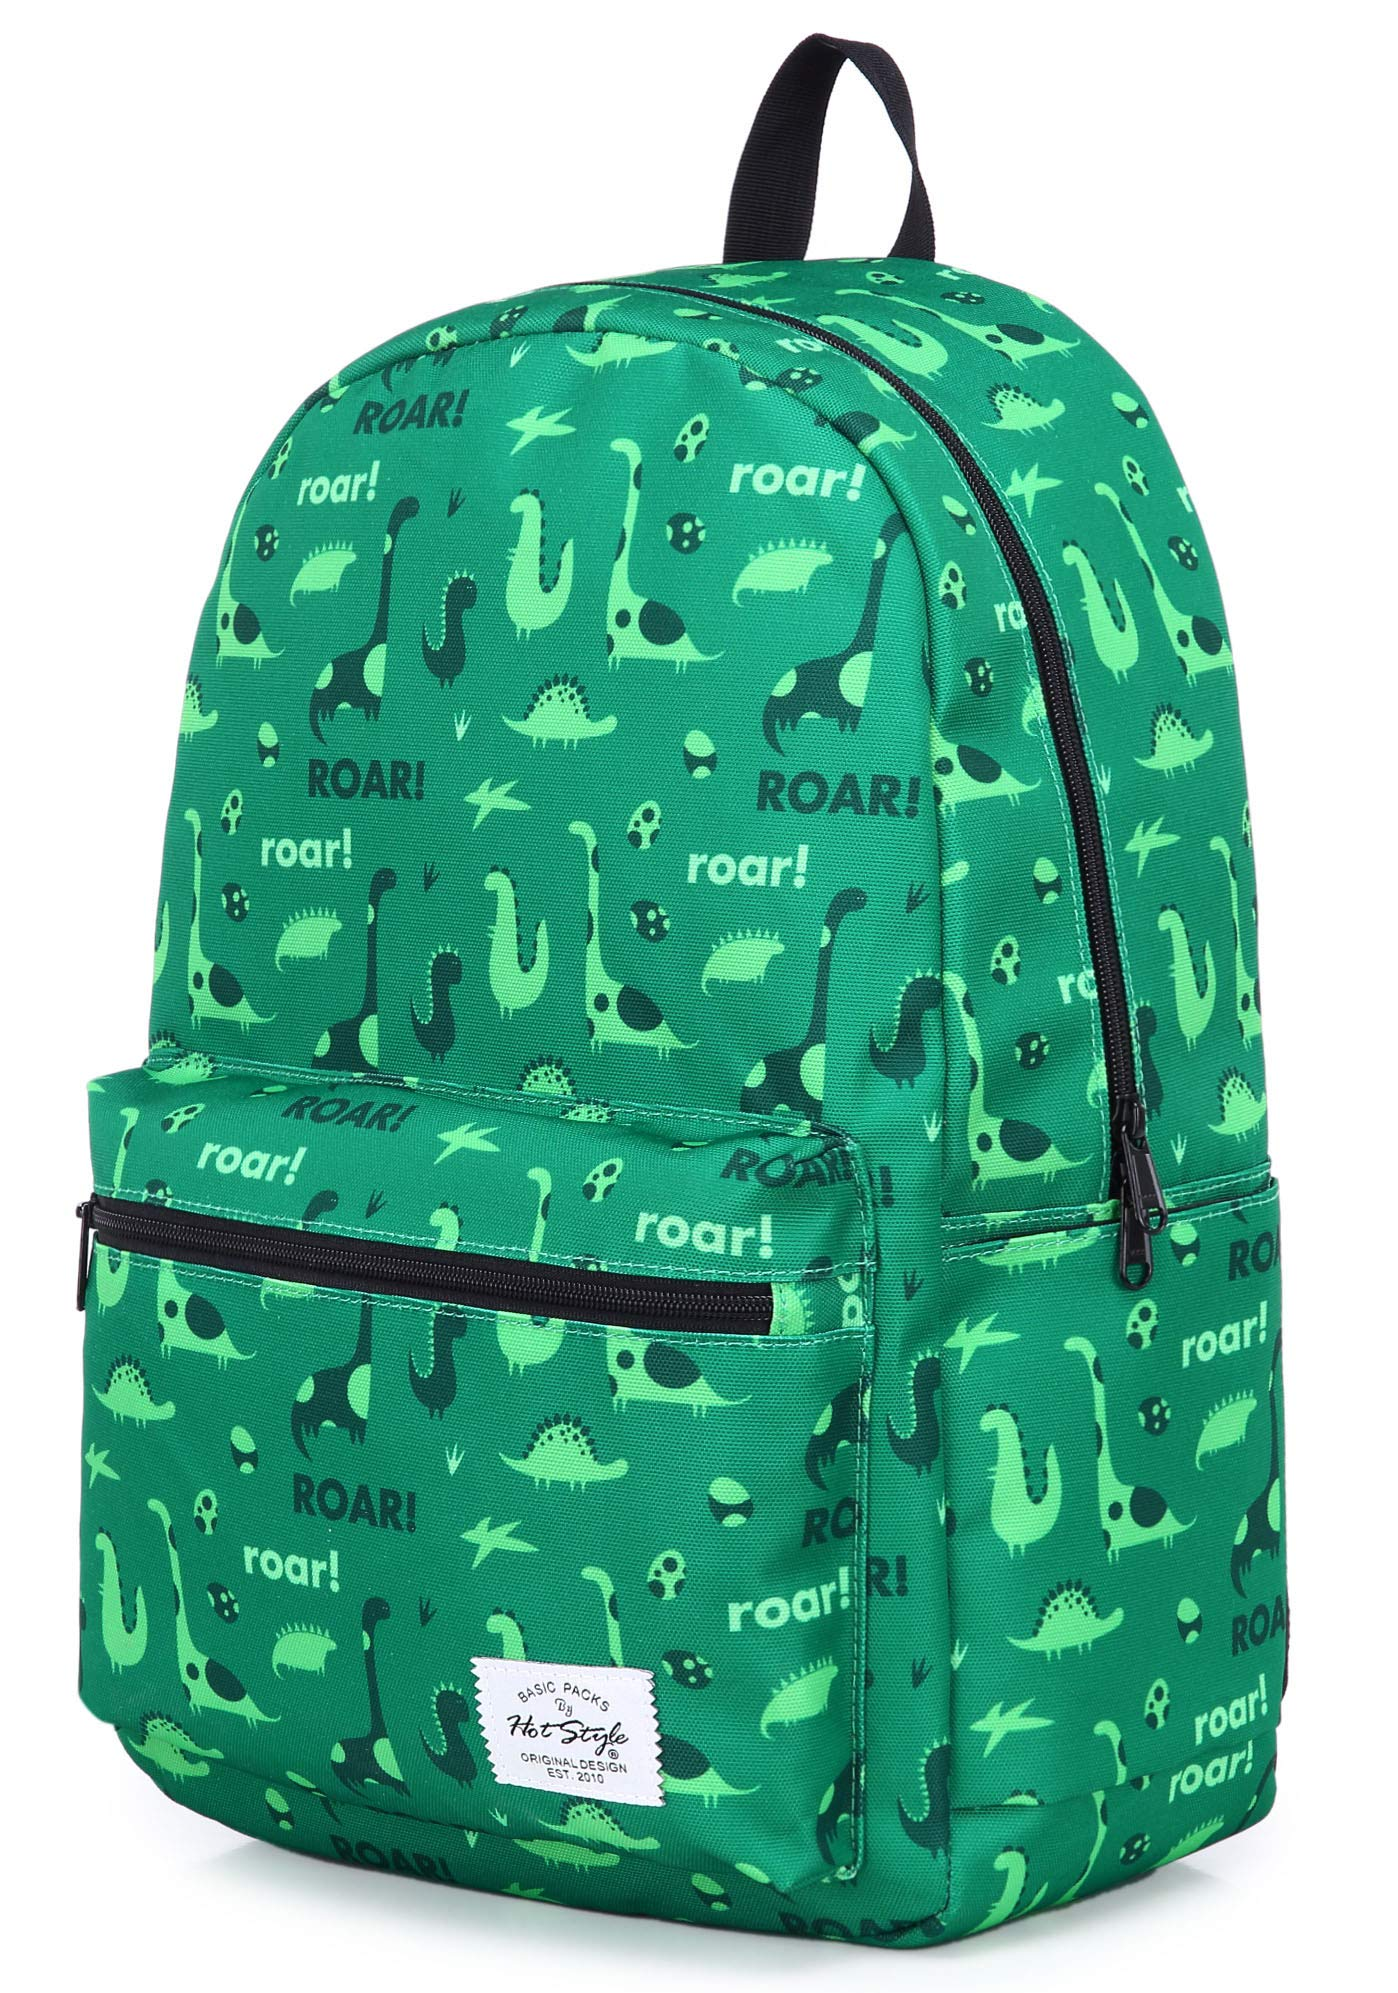 hotstyle TRENDYMAX Backpack Cute for School | 16''x12''x6'' | Holds 15.4-inch Laptop | Dinosaurs, Green